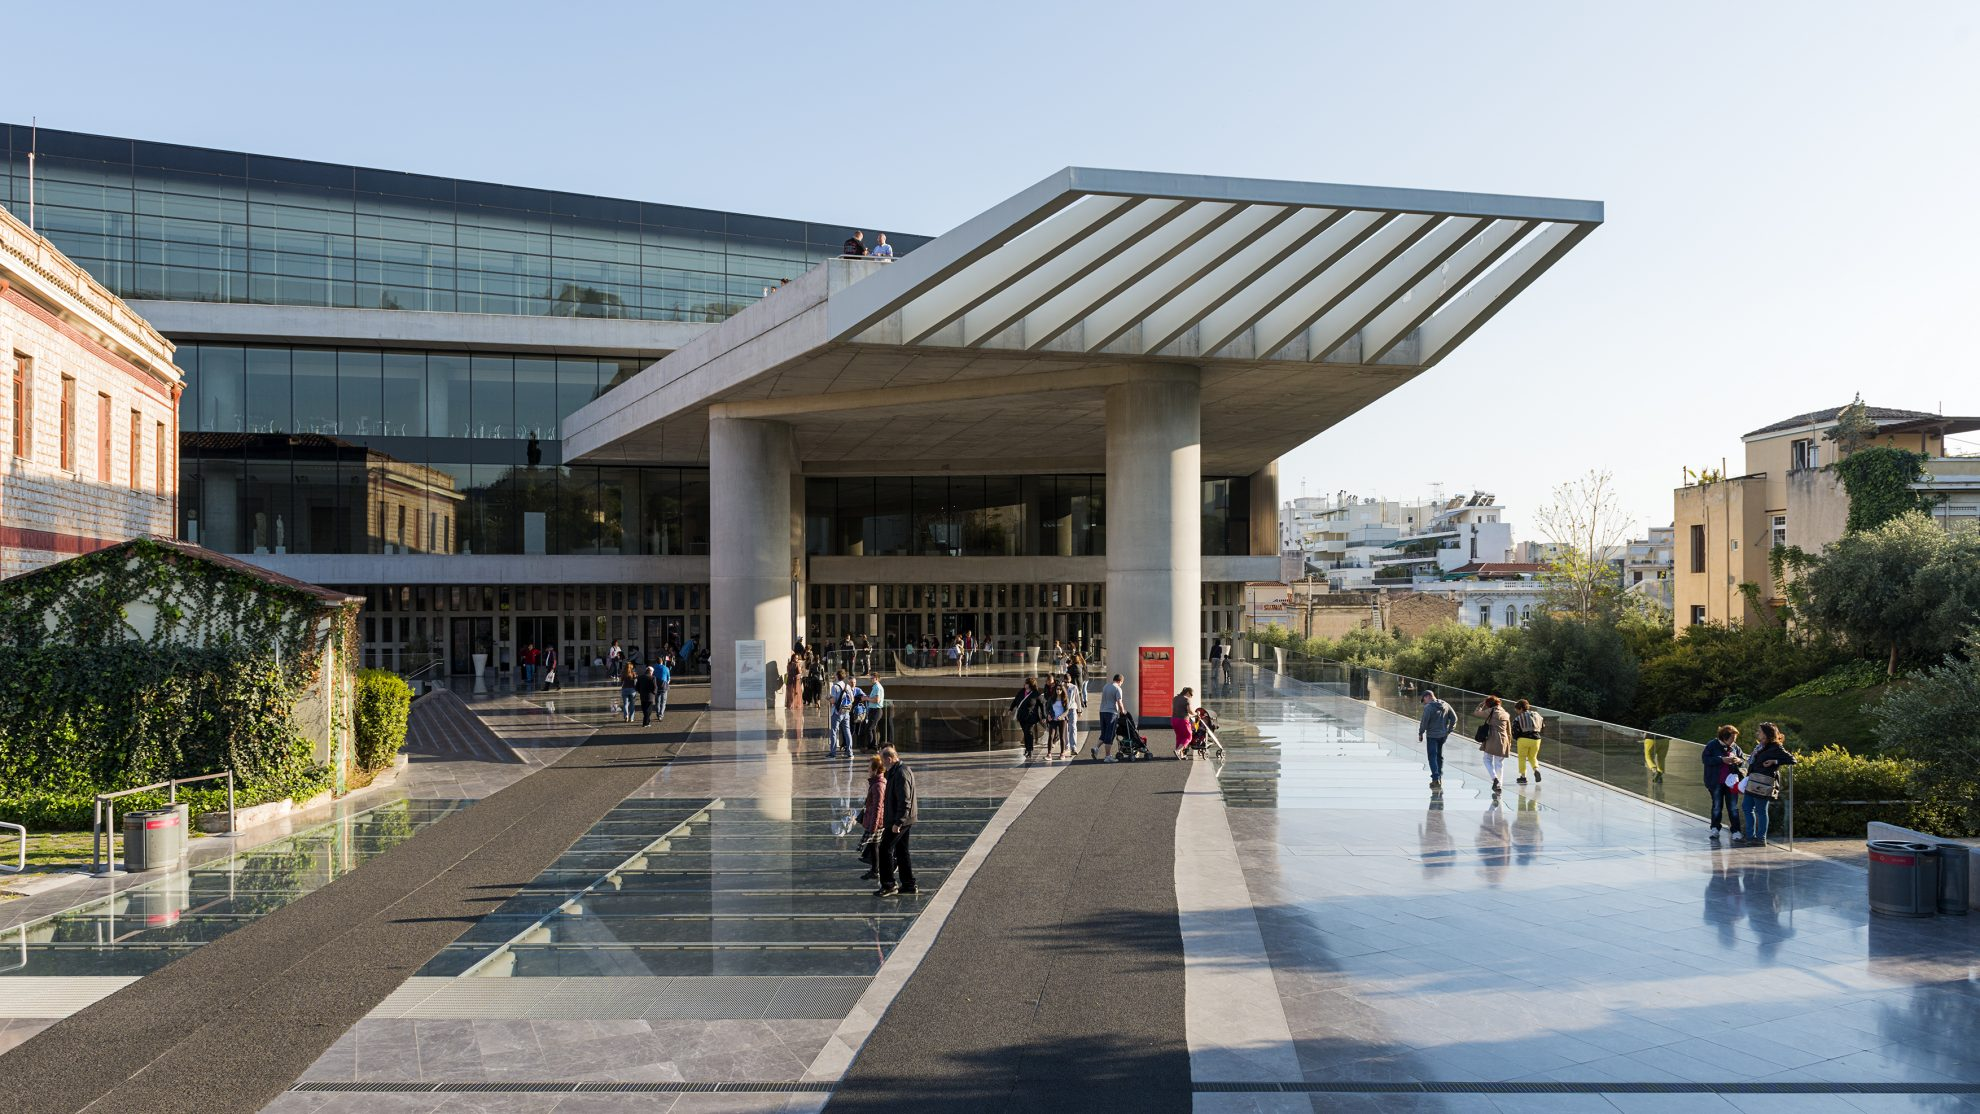 view-of-the-acropolis-museum-in-athens-one-of-the-most-important-archaeological-museums-in-the-world-1980x1114